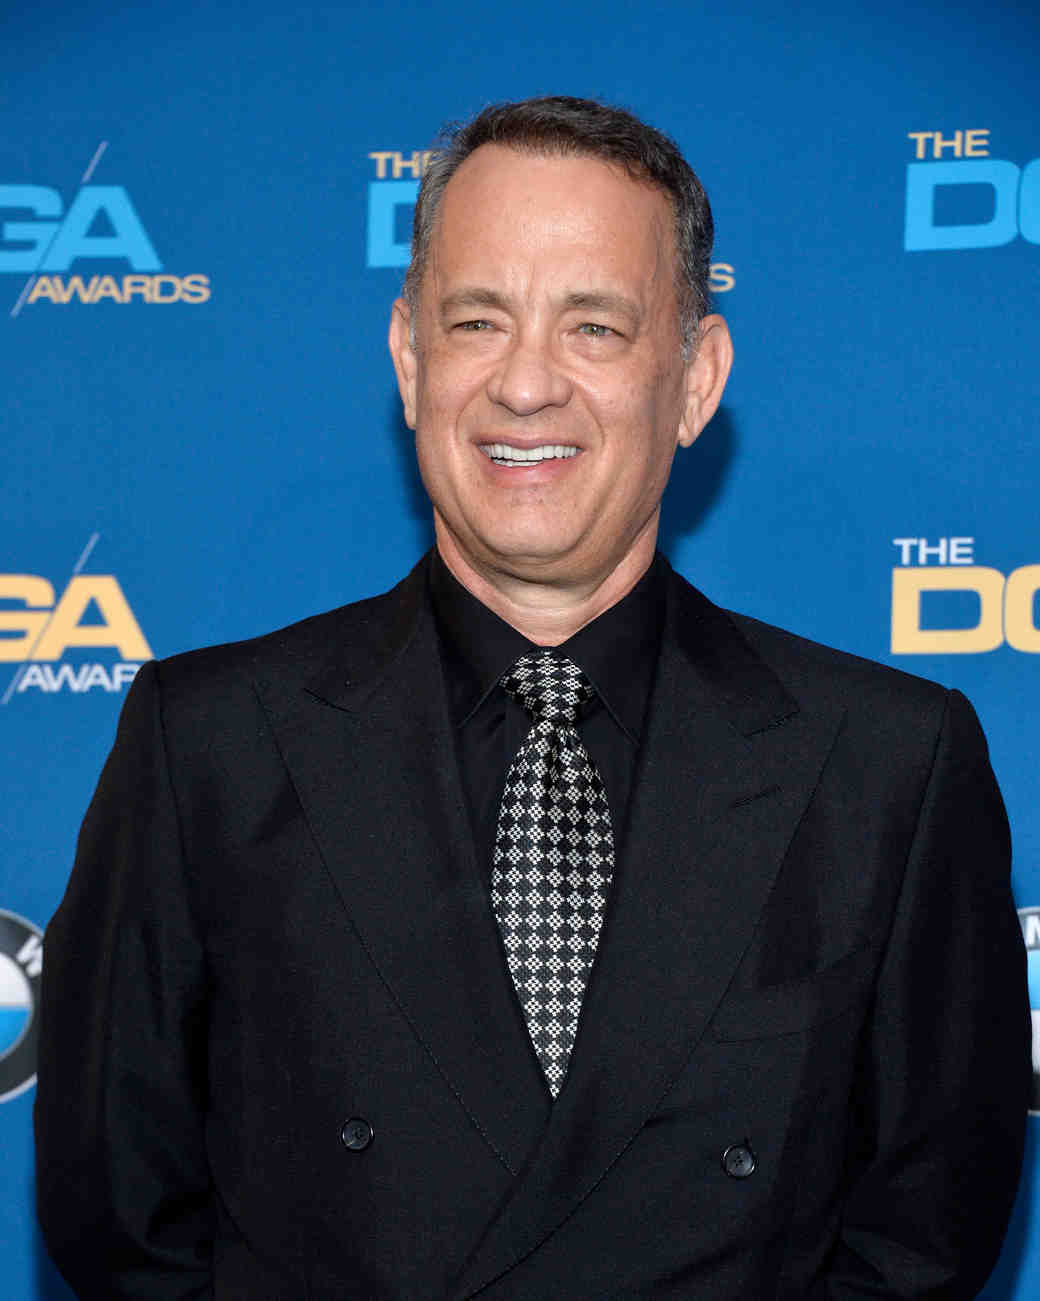 celebrity-wedding-officiants-tom-hanks-1015.jpg